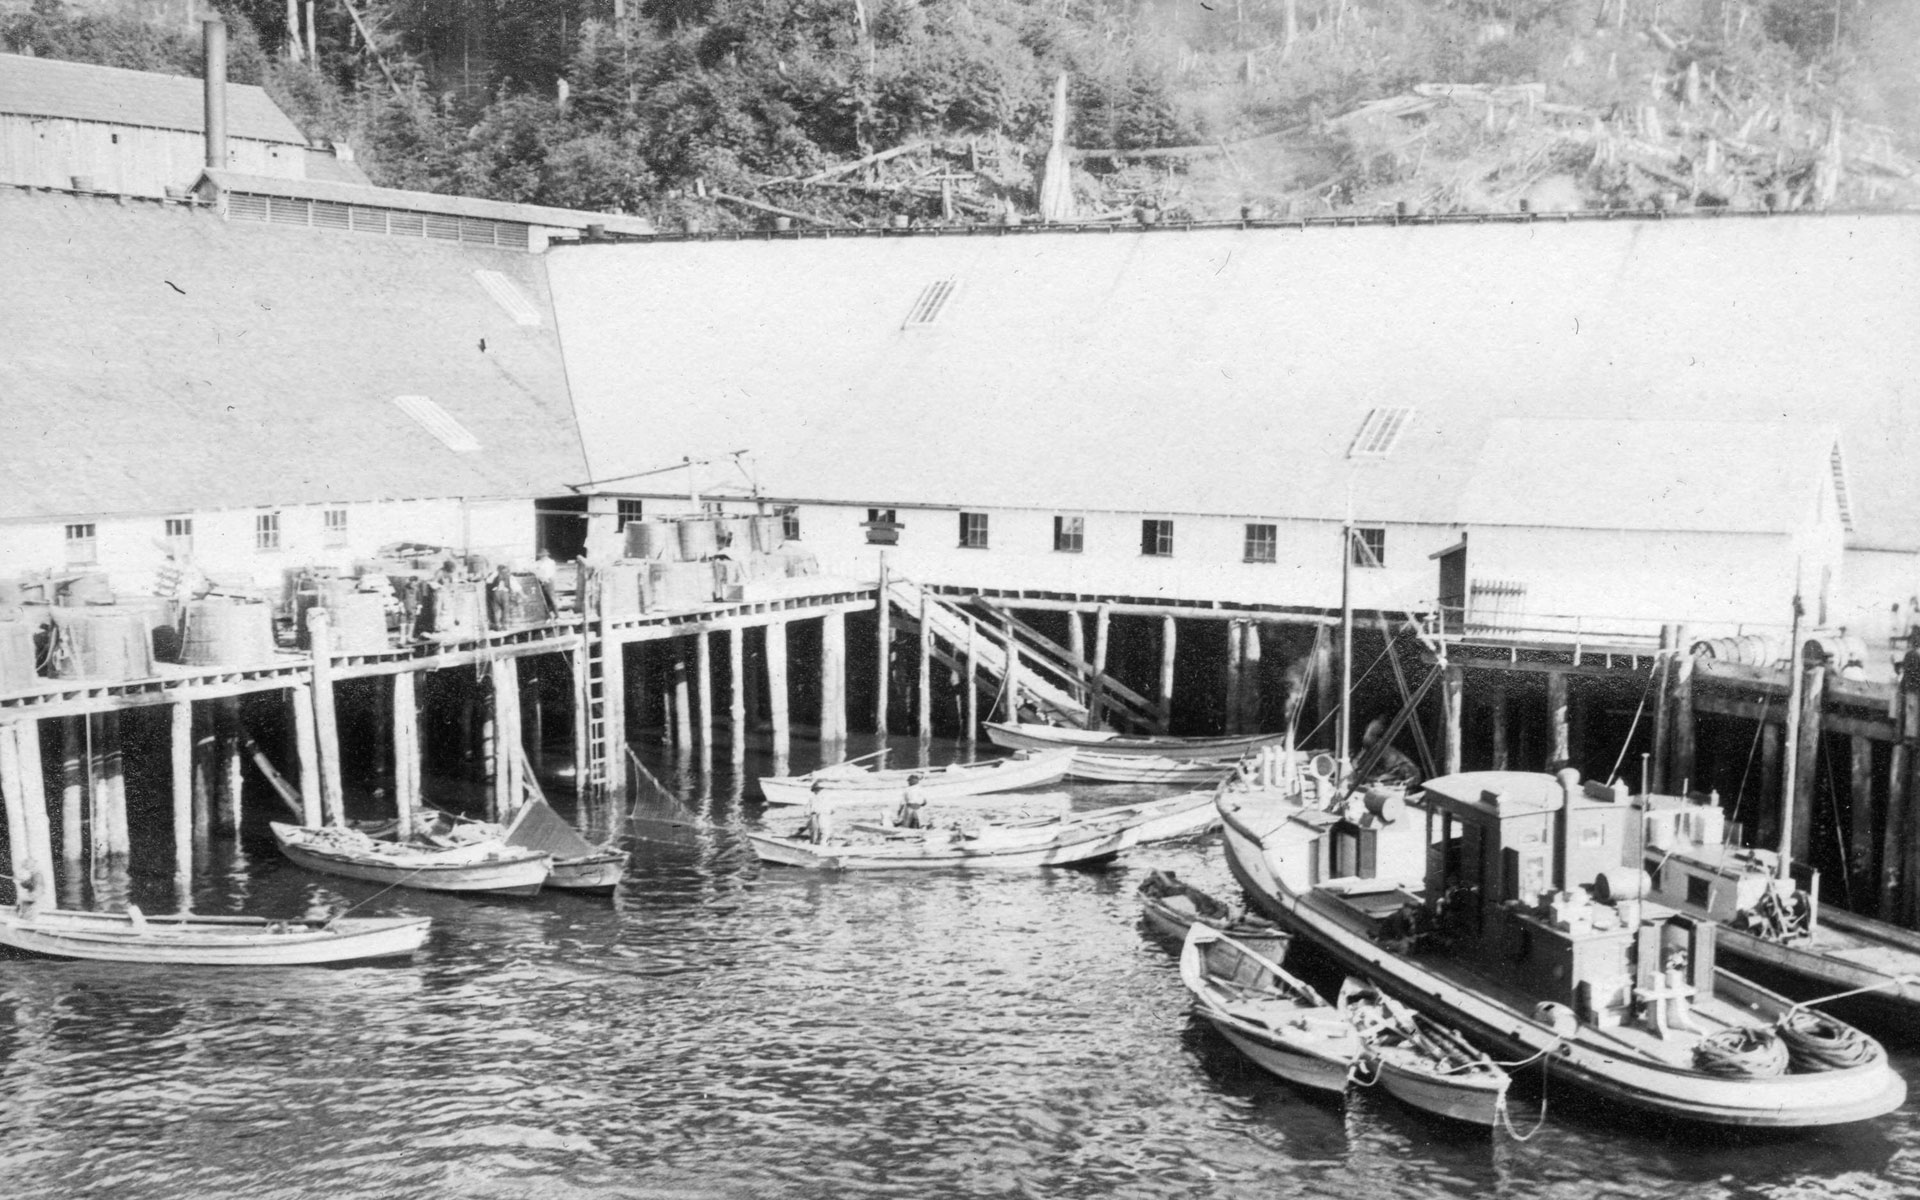 Good Hope Cannery with boats moored at the docks and net barrels on the wharf.